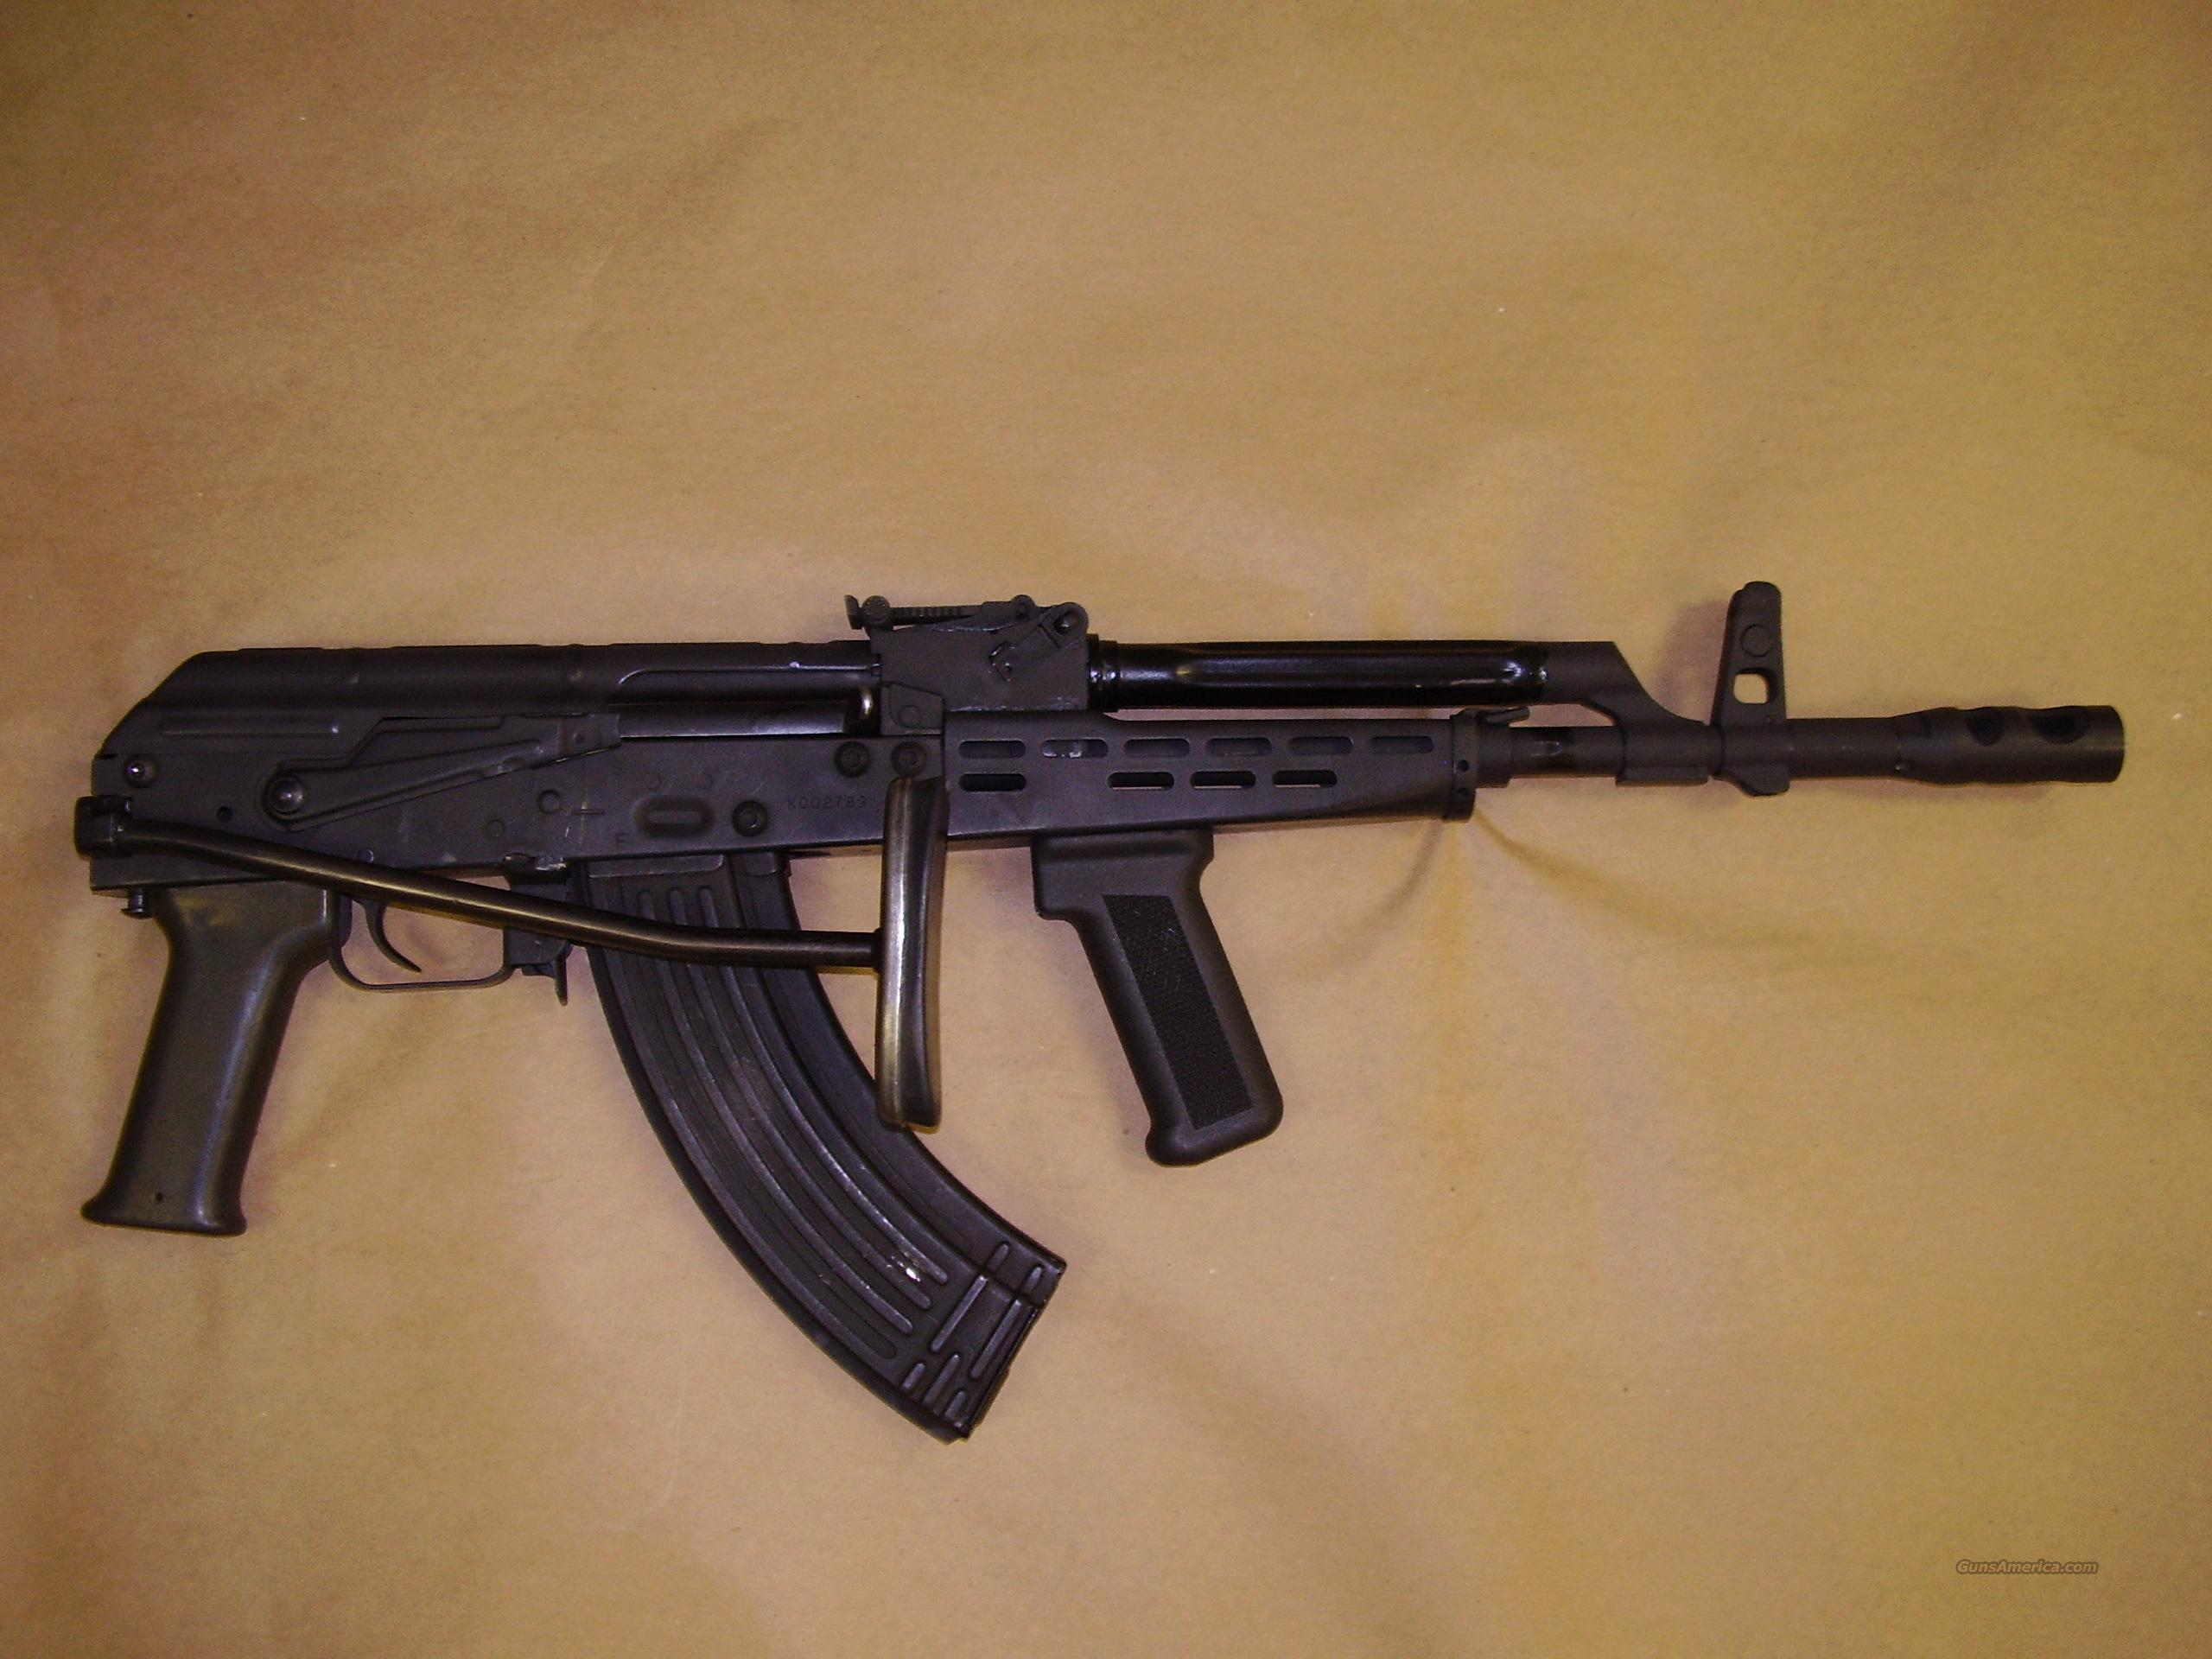 AMD-65  Guns > Rifles > AK-47 Rifles (and copies) > Folding Stock